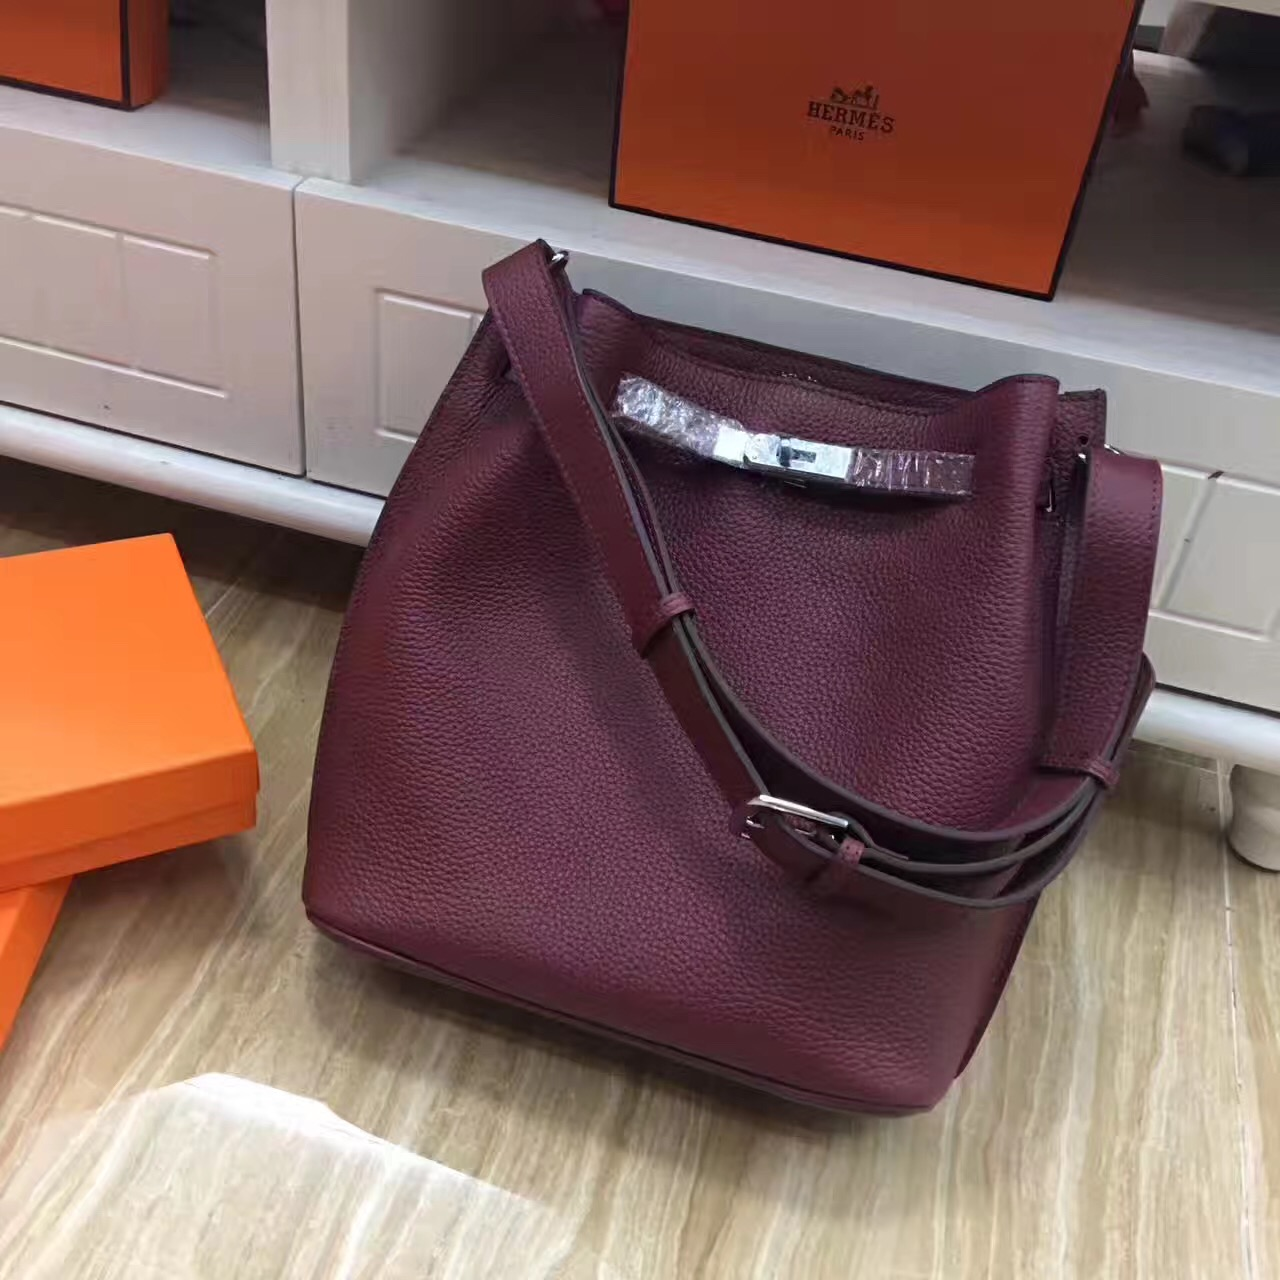 Hermes So Kelly 28cm Togo Leather Shoulder Bag Burgundy Silver